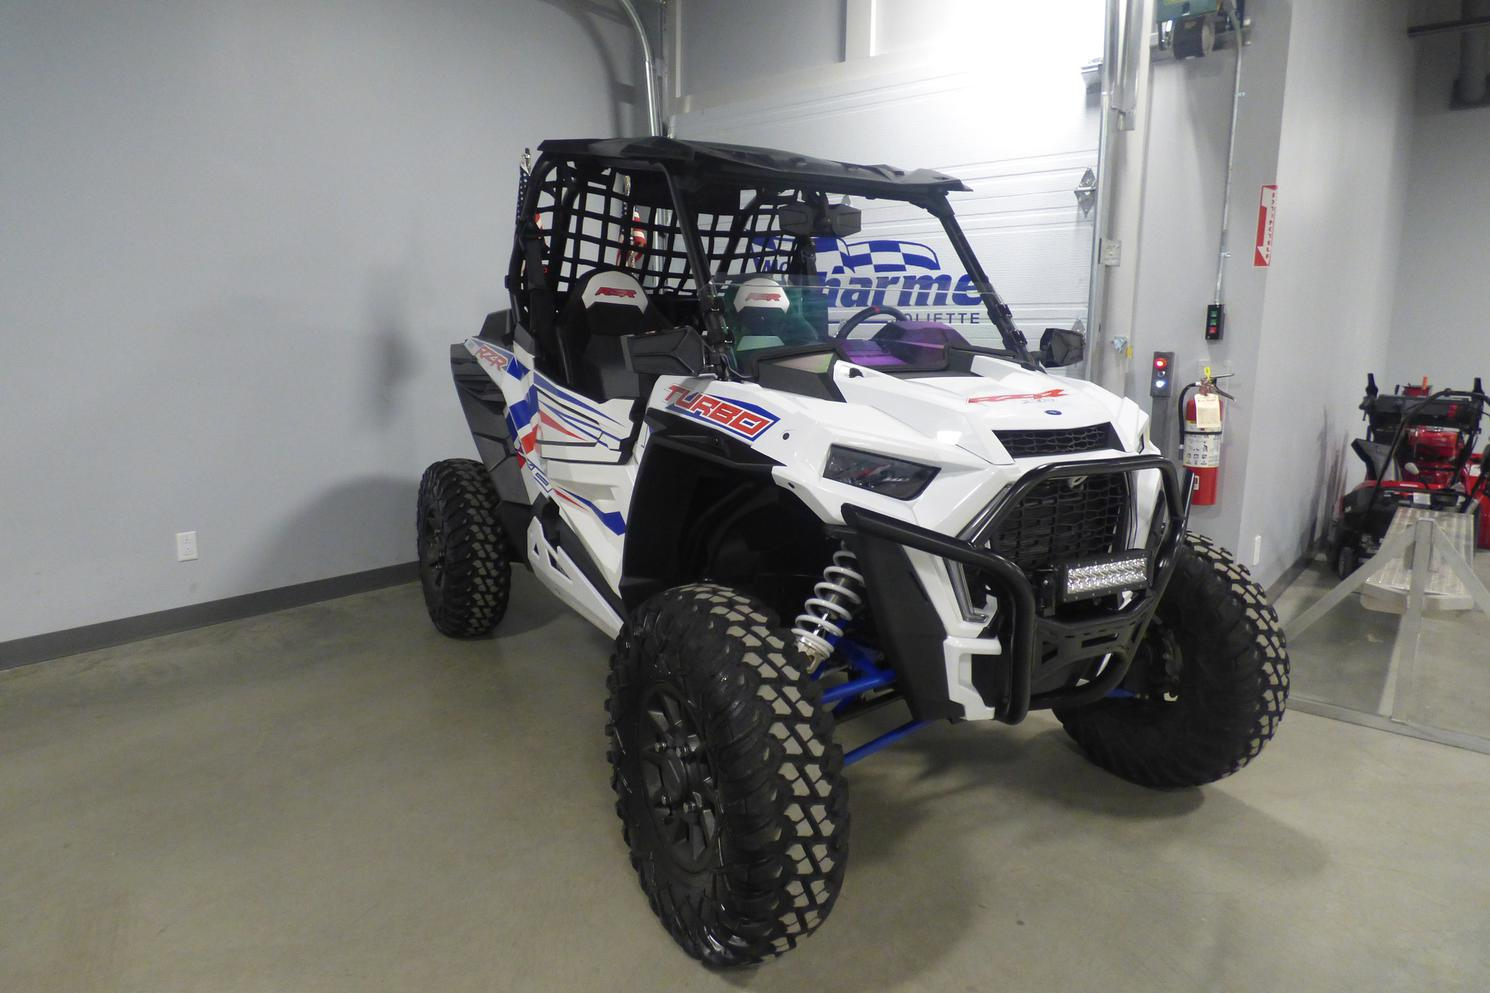 2019 Polaris RZR 1000 XP TURBO LE * 6 377 KM